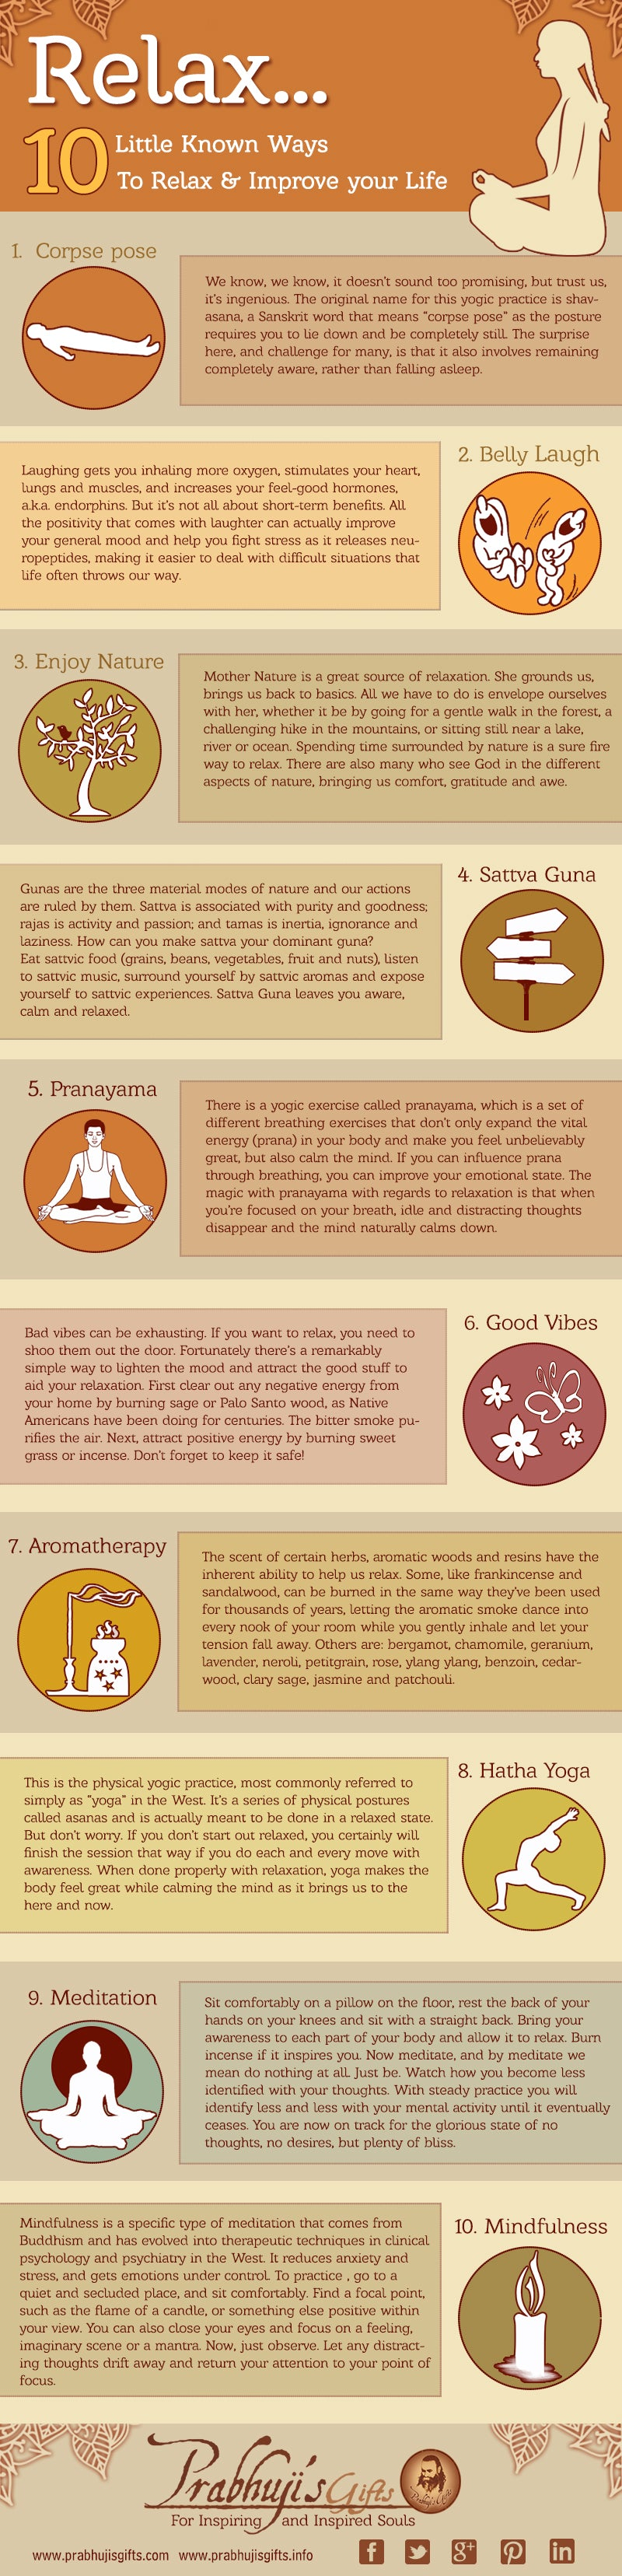 Relaxation Infographic_PG